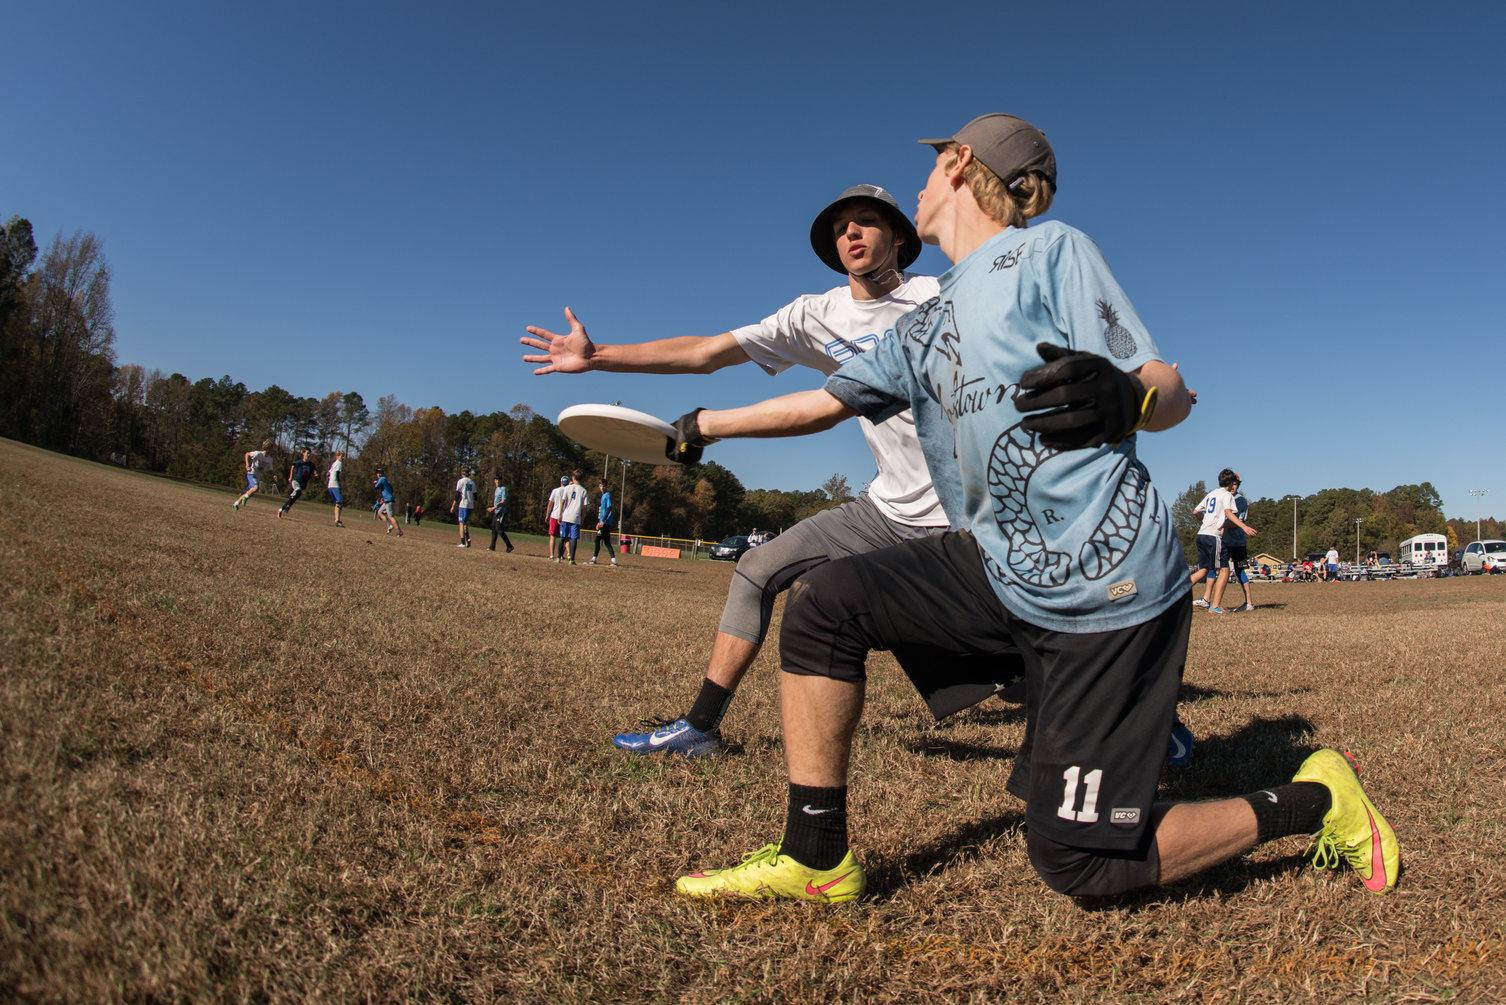 Senior Anders Juengst (foreground) at an ultimate tournament